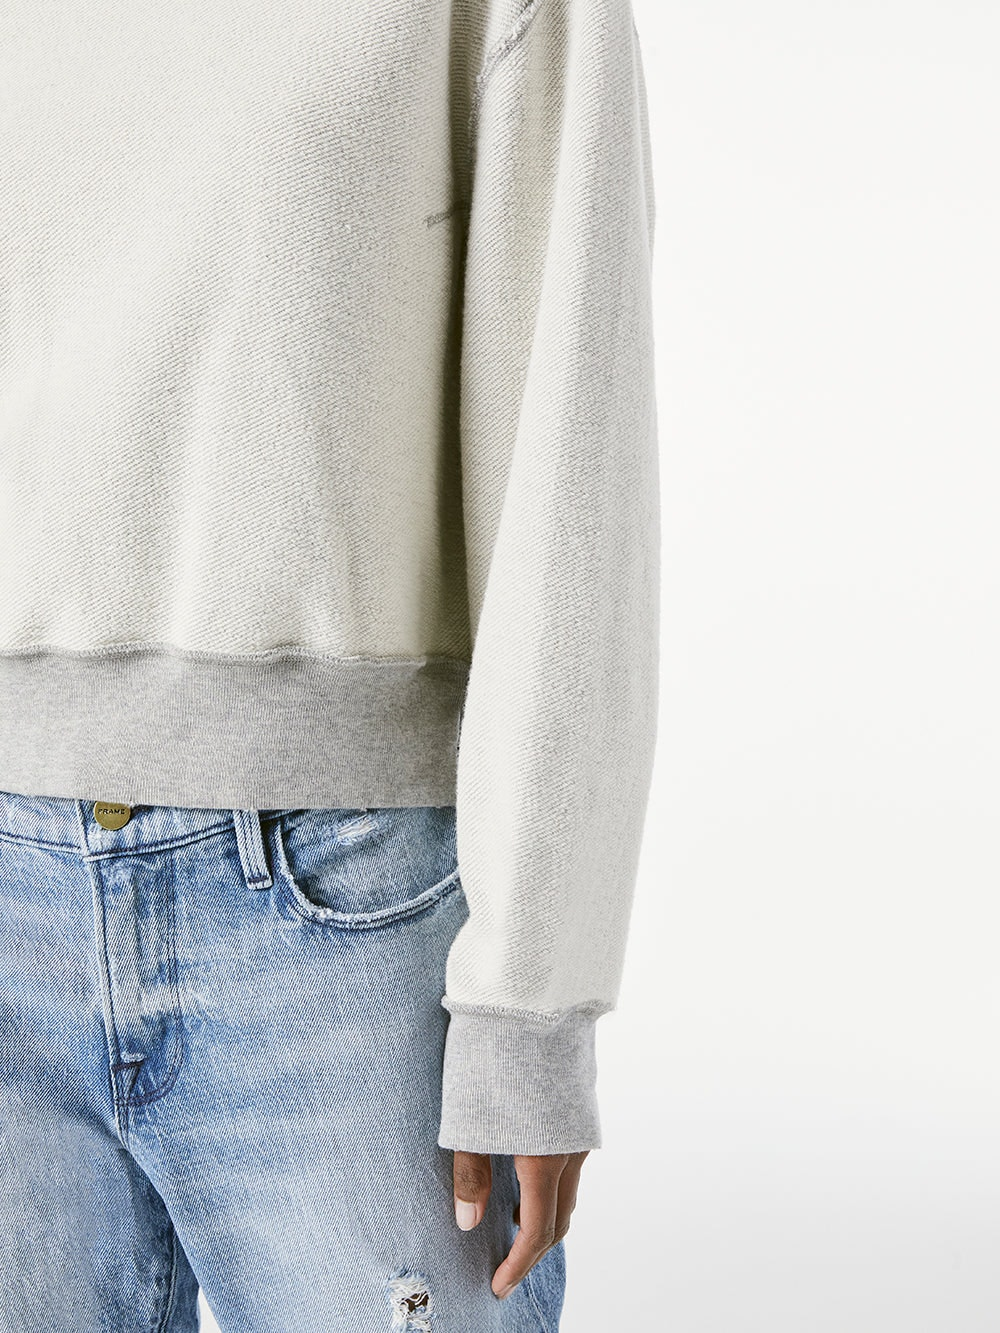 sweater detail view  2